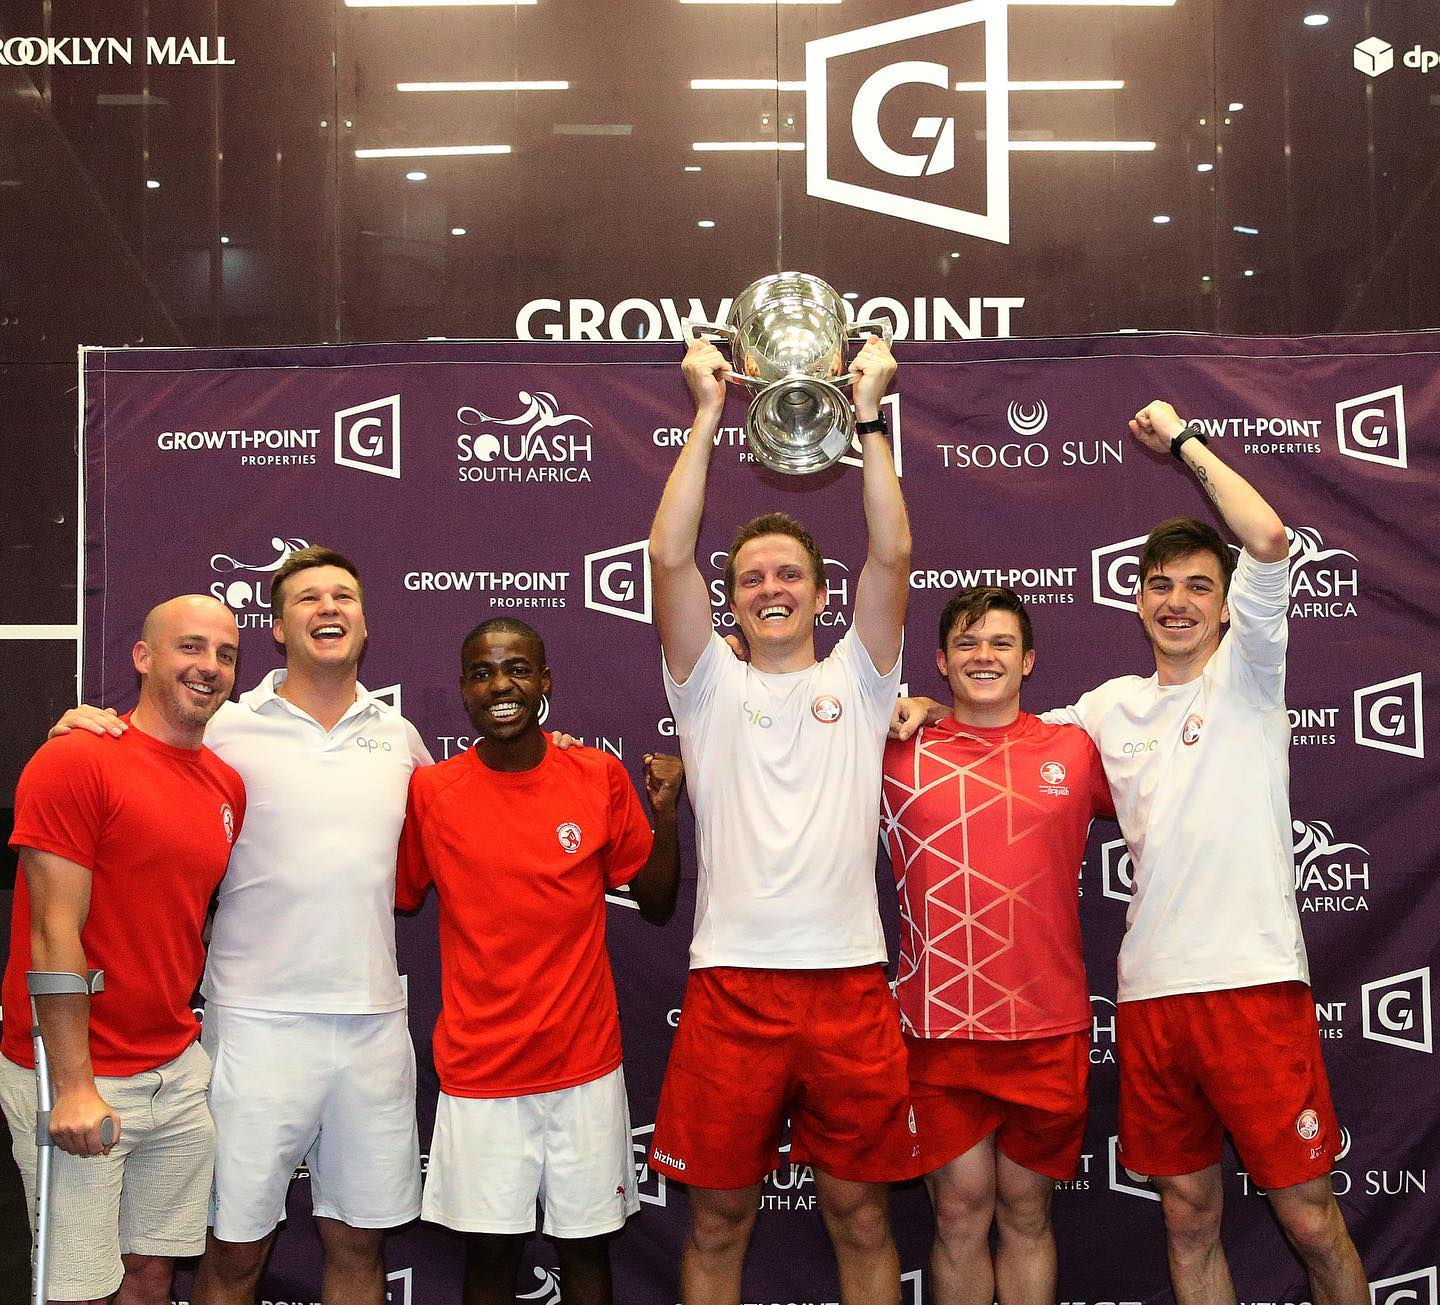 Joburg Squash crowned Men's Growthpoint IPT champions – results day 5